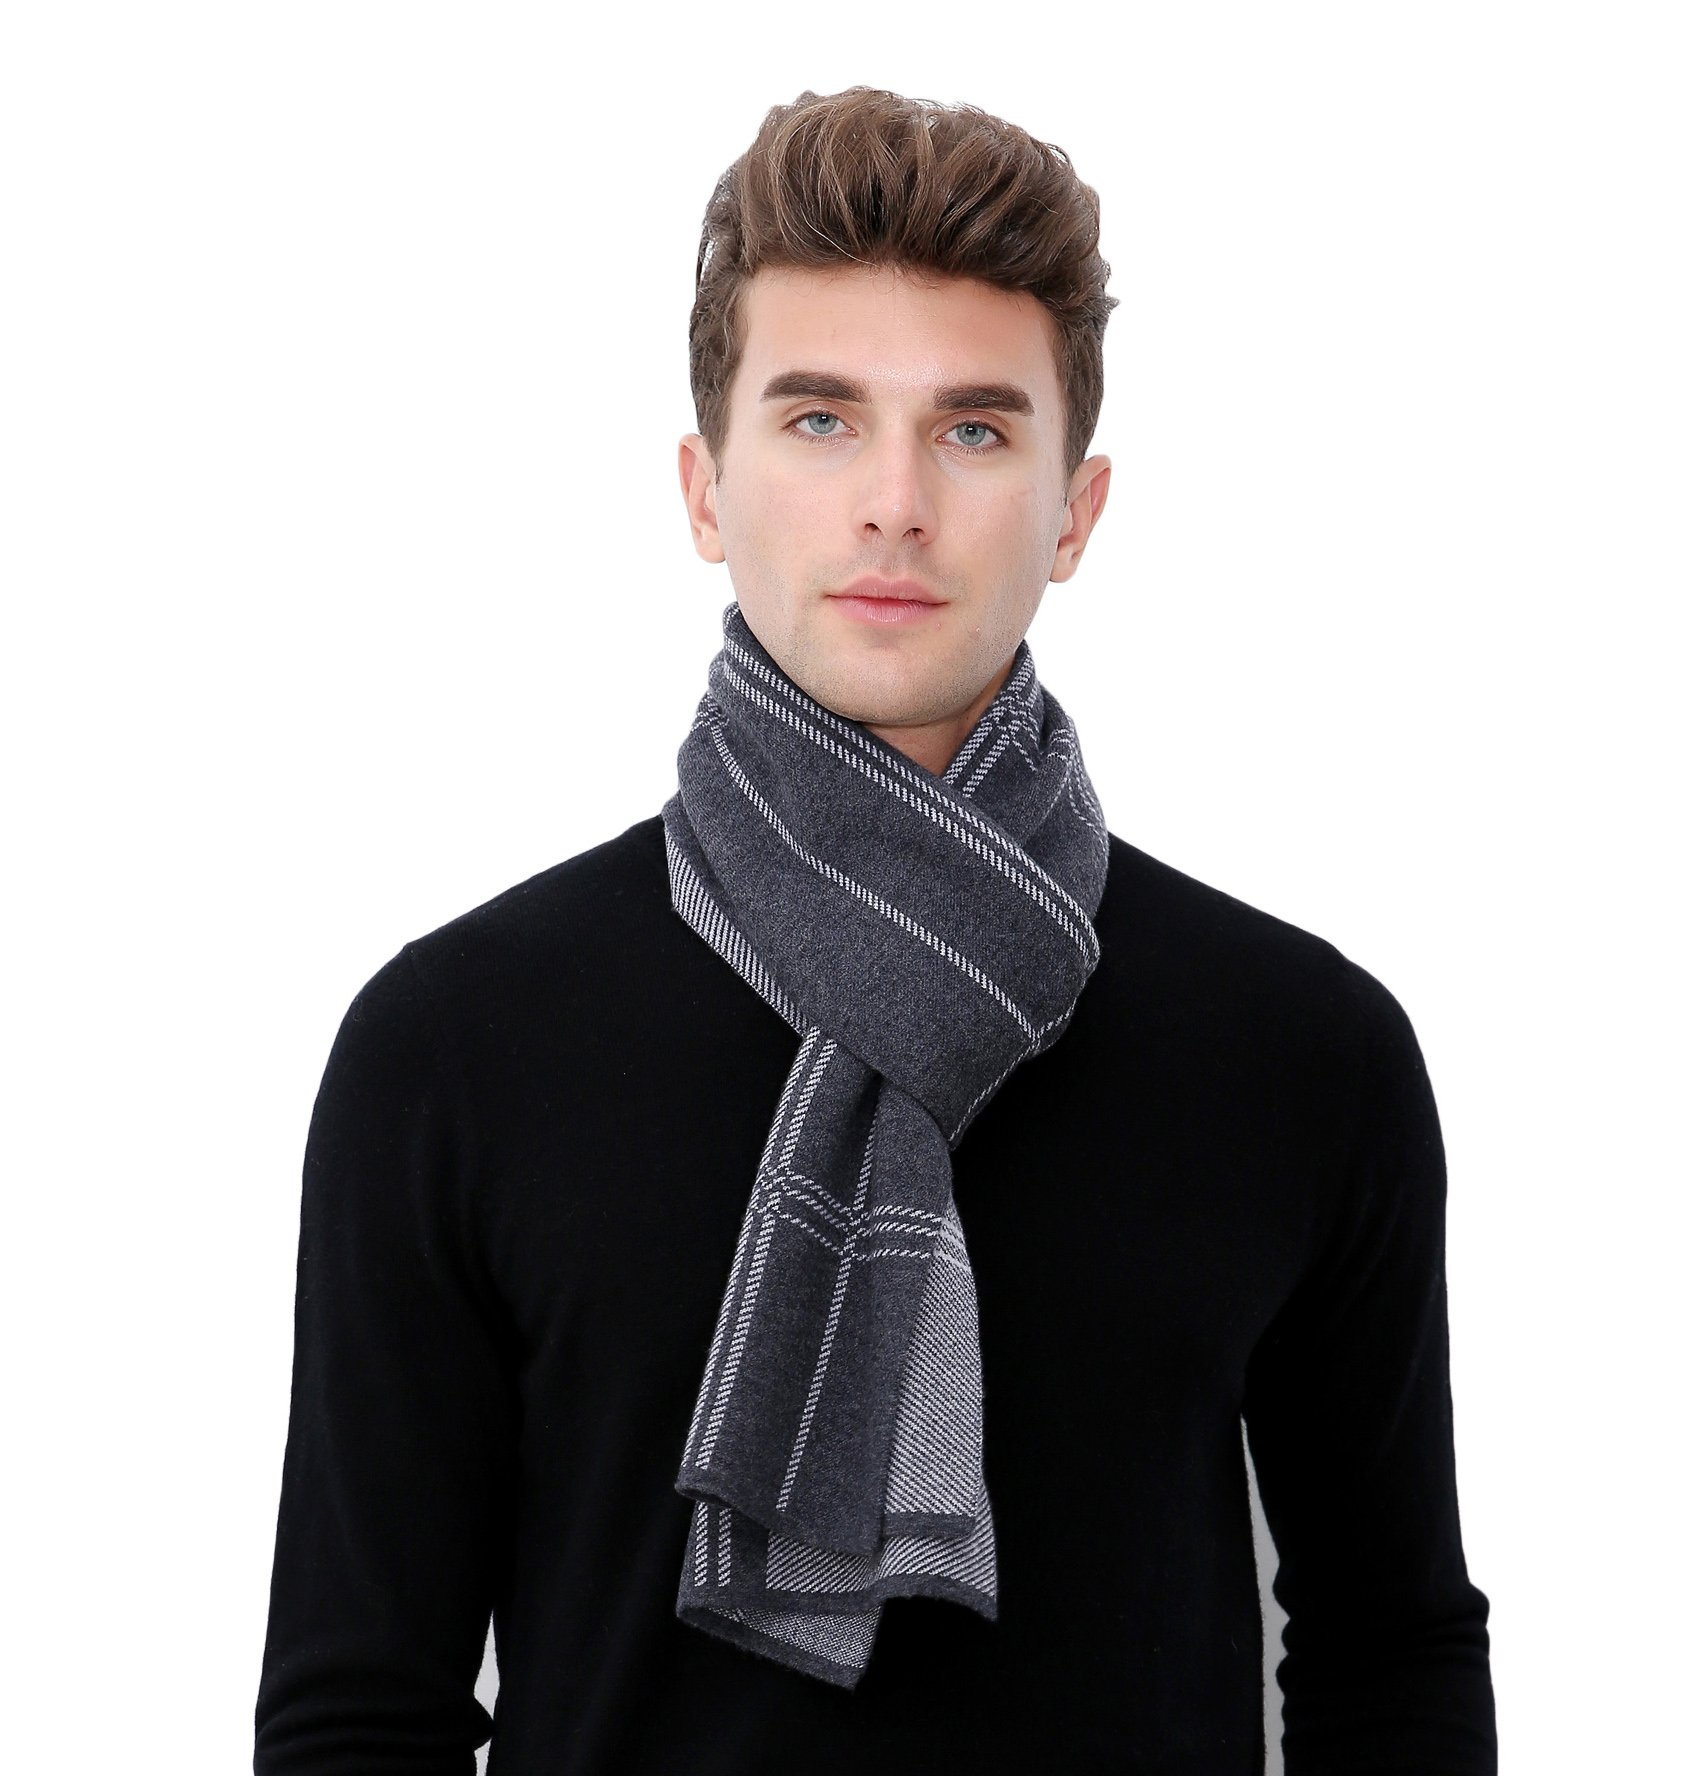 RIONA Men's Australian Merino Wool stripe Knitted Scarf - Soft Warm Gentleman Neckwear with Gift Box(Grey)